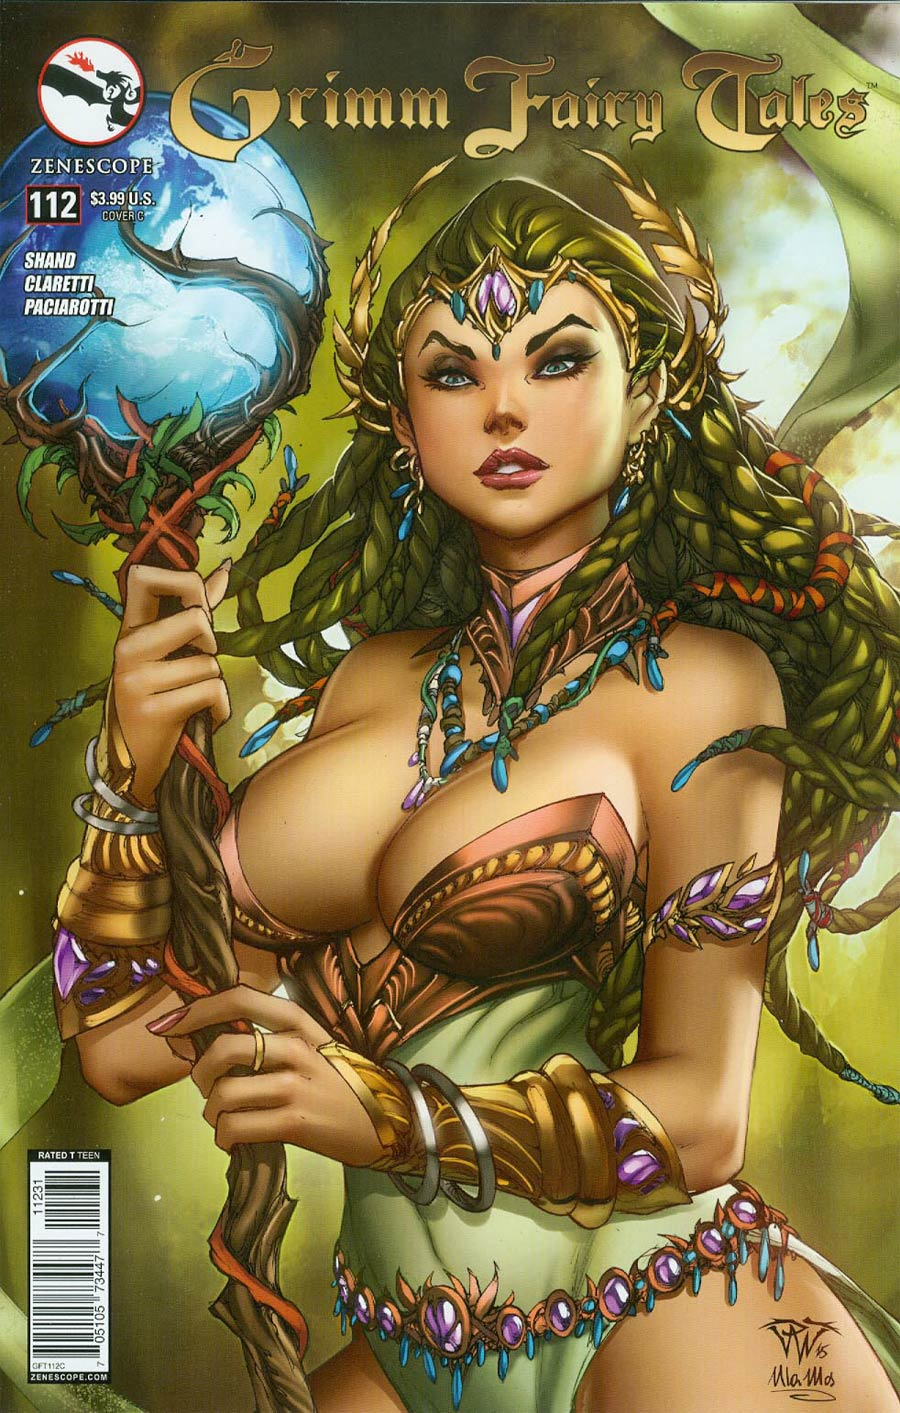 Grimm Fairy Tales #112 Cover C Paolo Pantalena